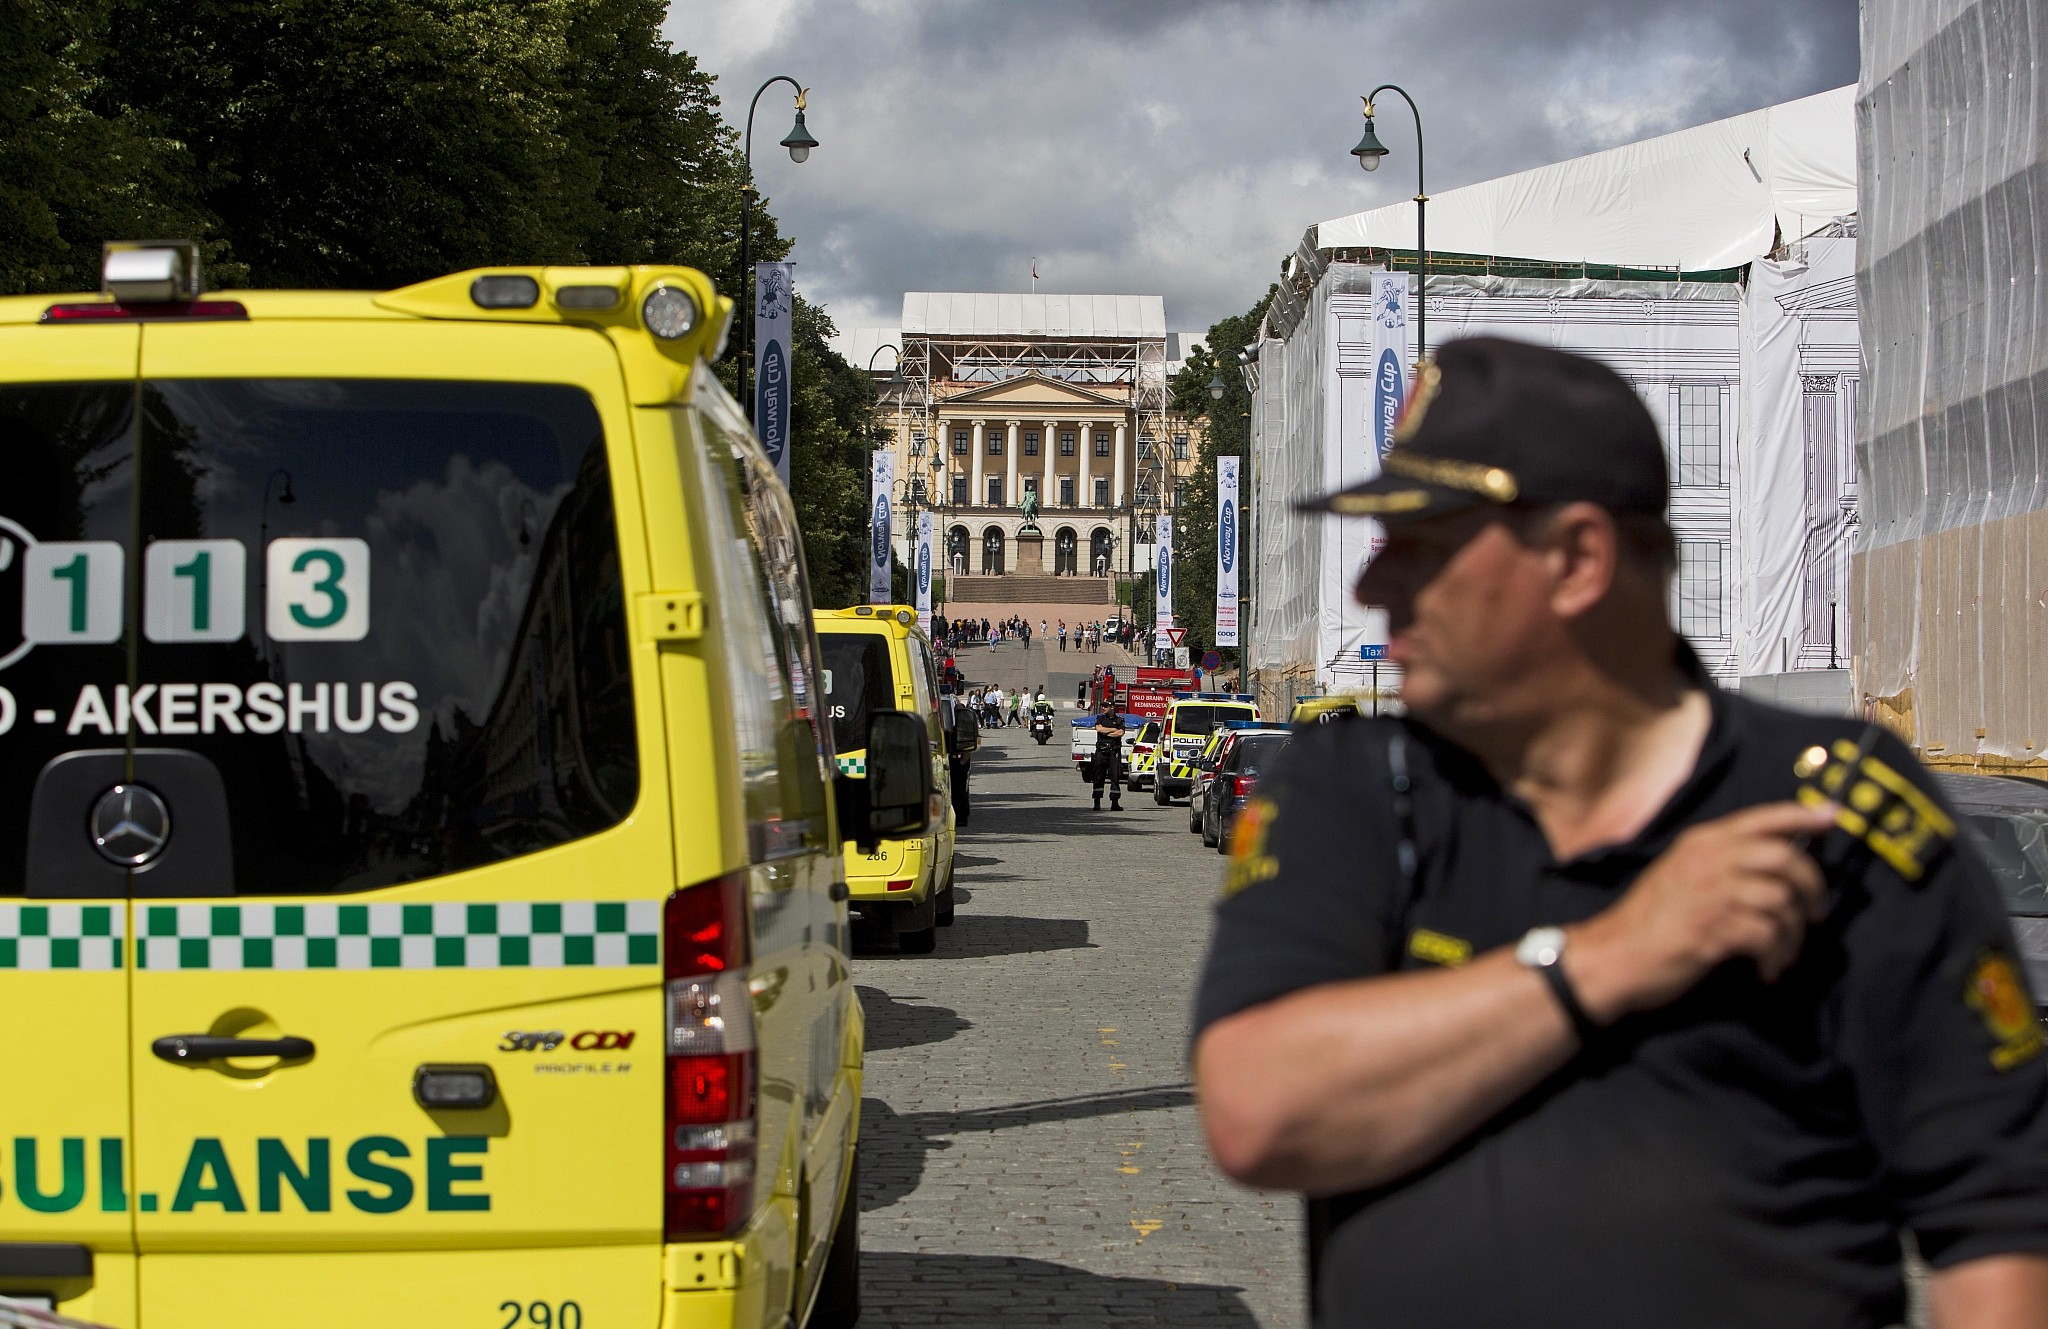 Illustrative Police and ambulances deployed in Oslo after a bomb scare